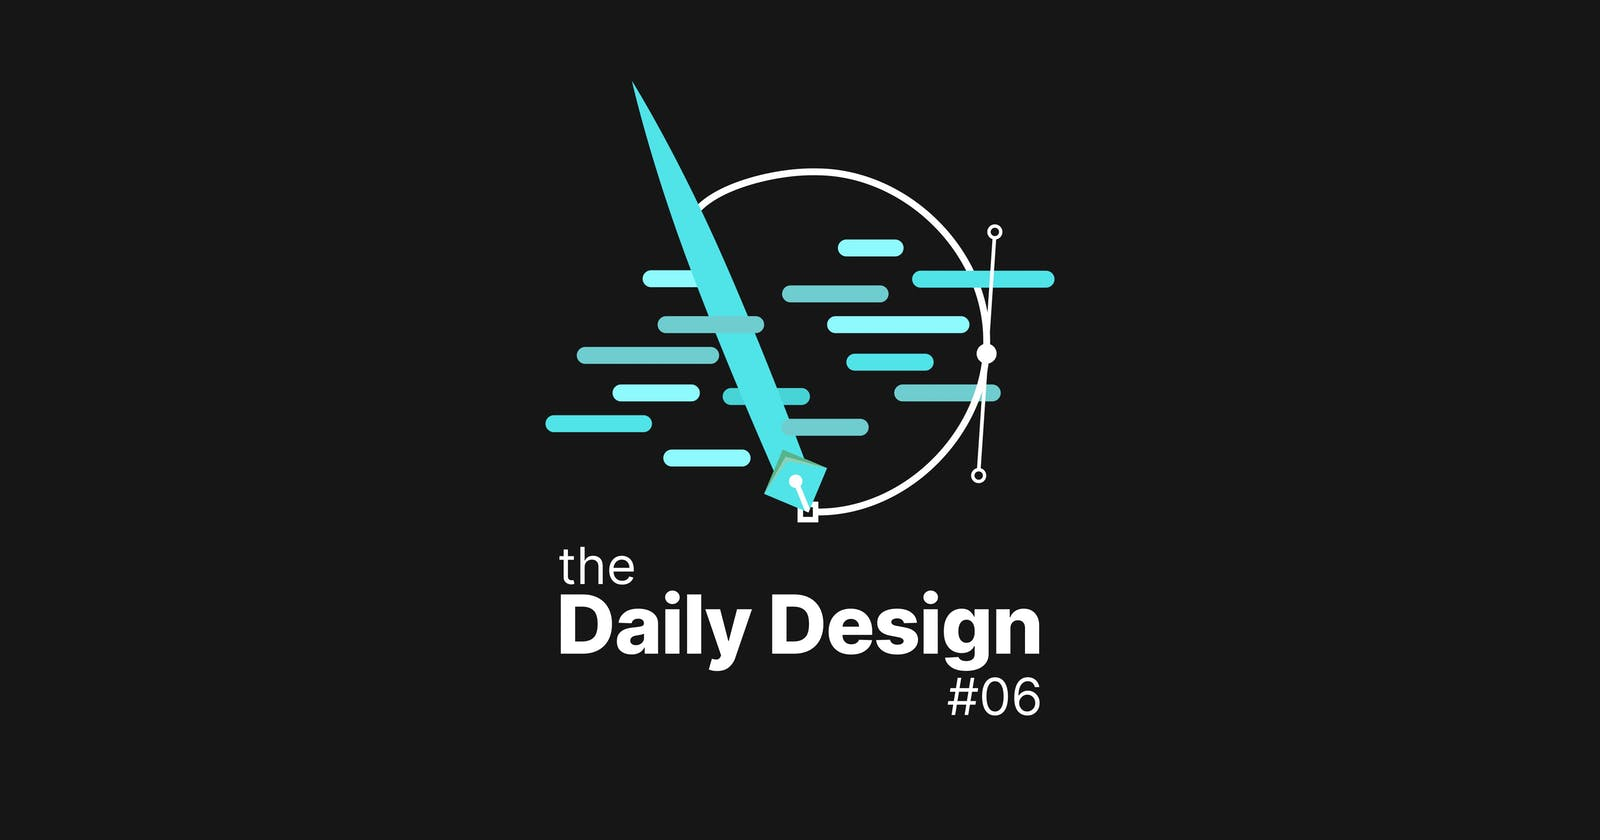 The Daily Design #06